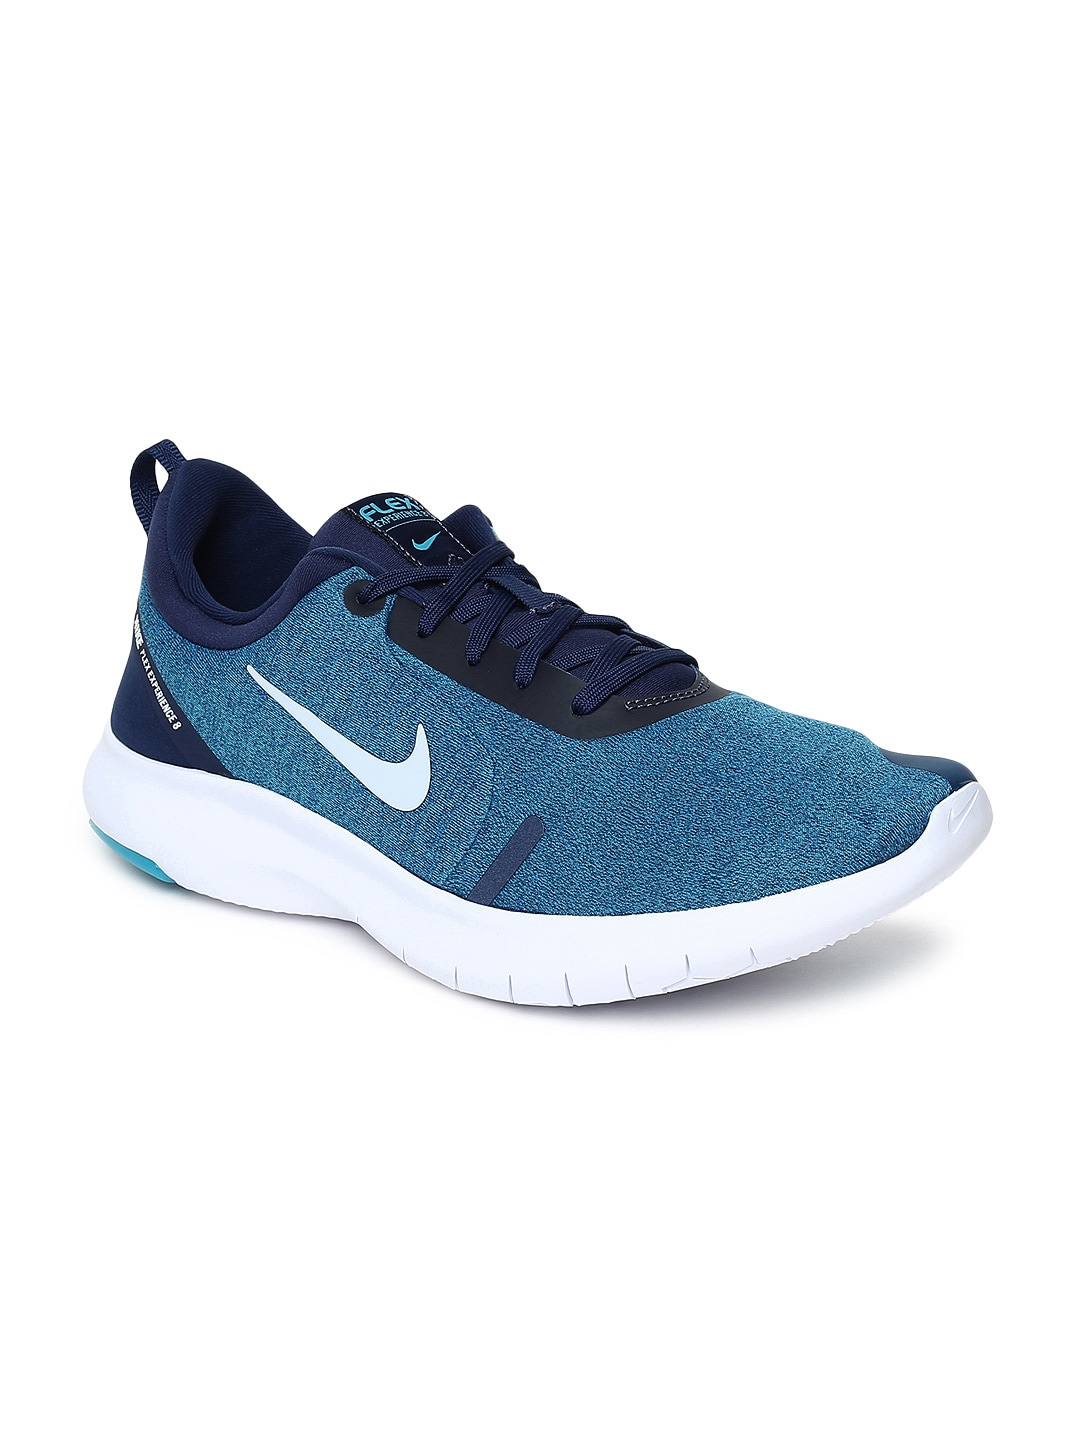 8702d1352c9 Nike Running Shoes - Buy Nike Running Shoes Online